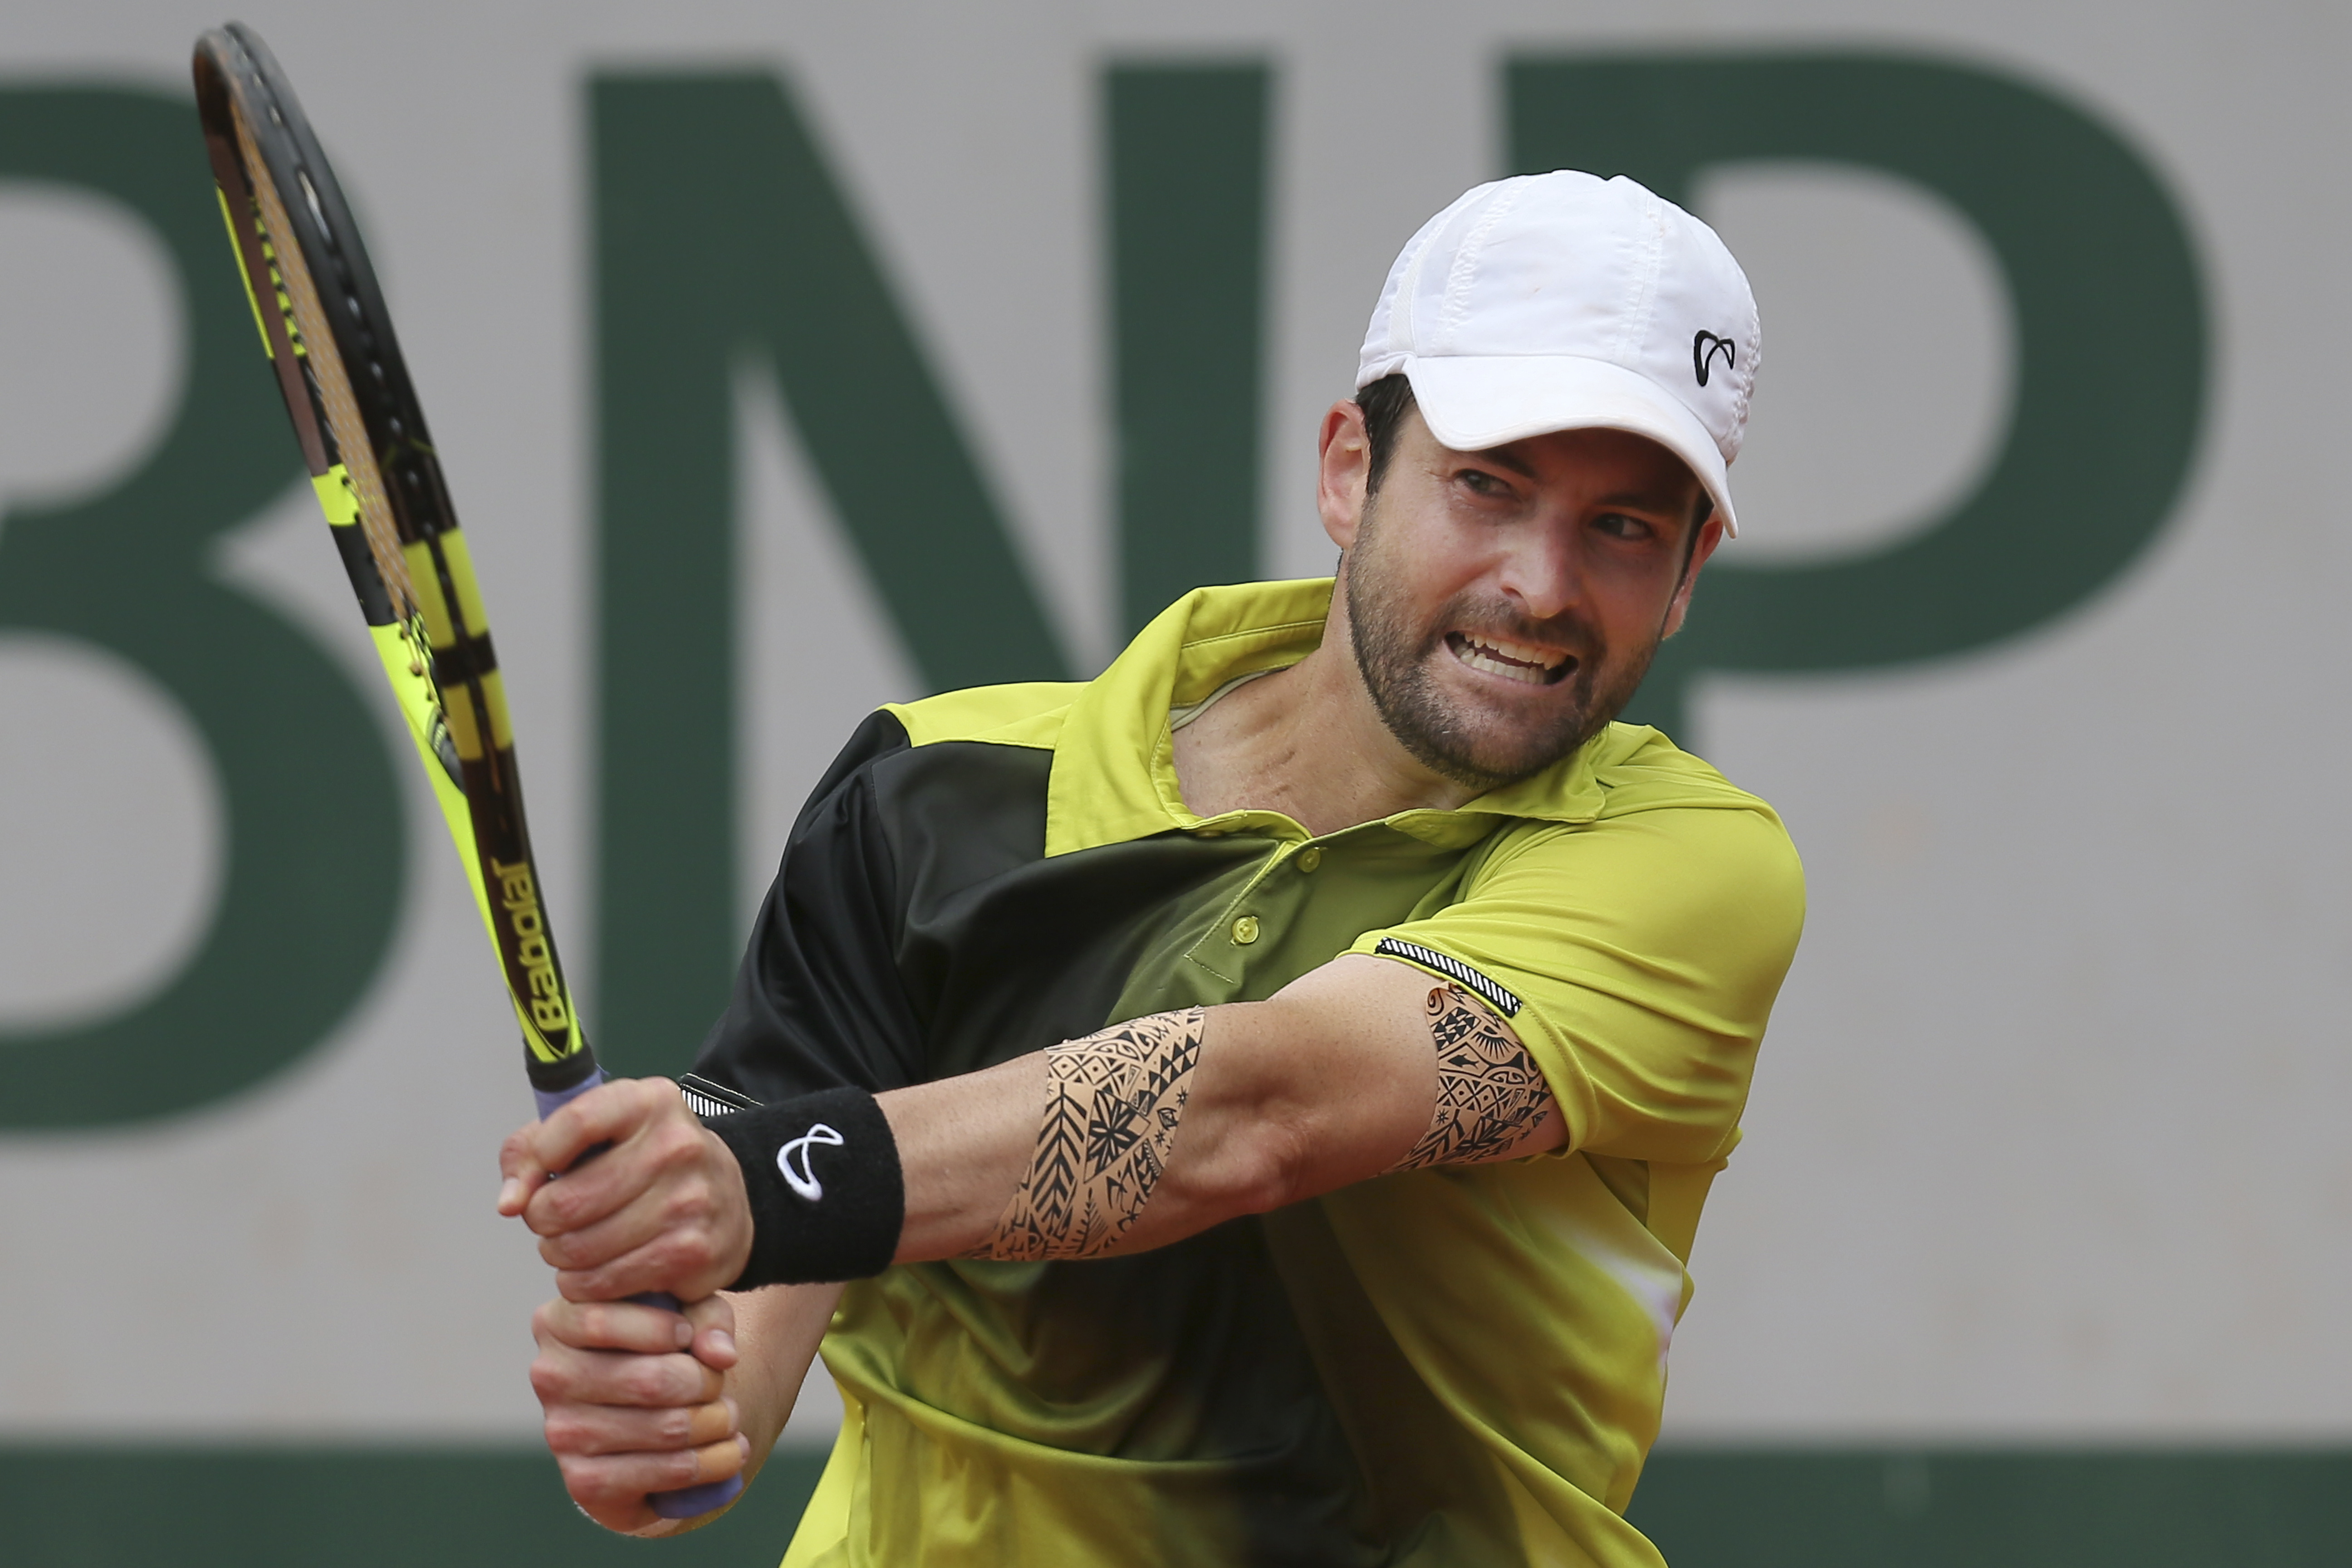 FILE - In this May 24, 2016 file photo, Brian Baker of the U.S. returns in his first round match of the French Open tennis tournament against Australia's Bernard Tomic at the Roland Garros stadium in Paris, France.  Baker, whose promising career has been